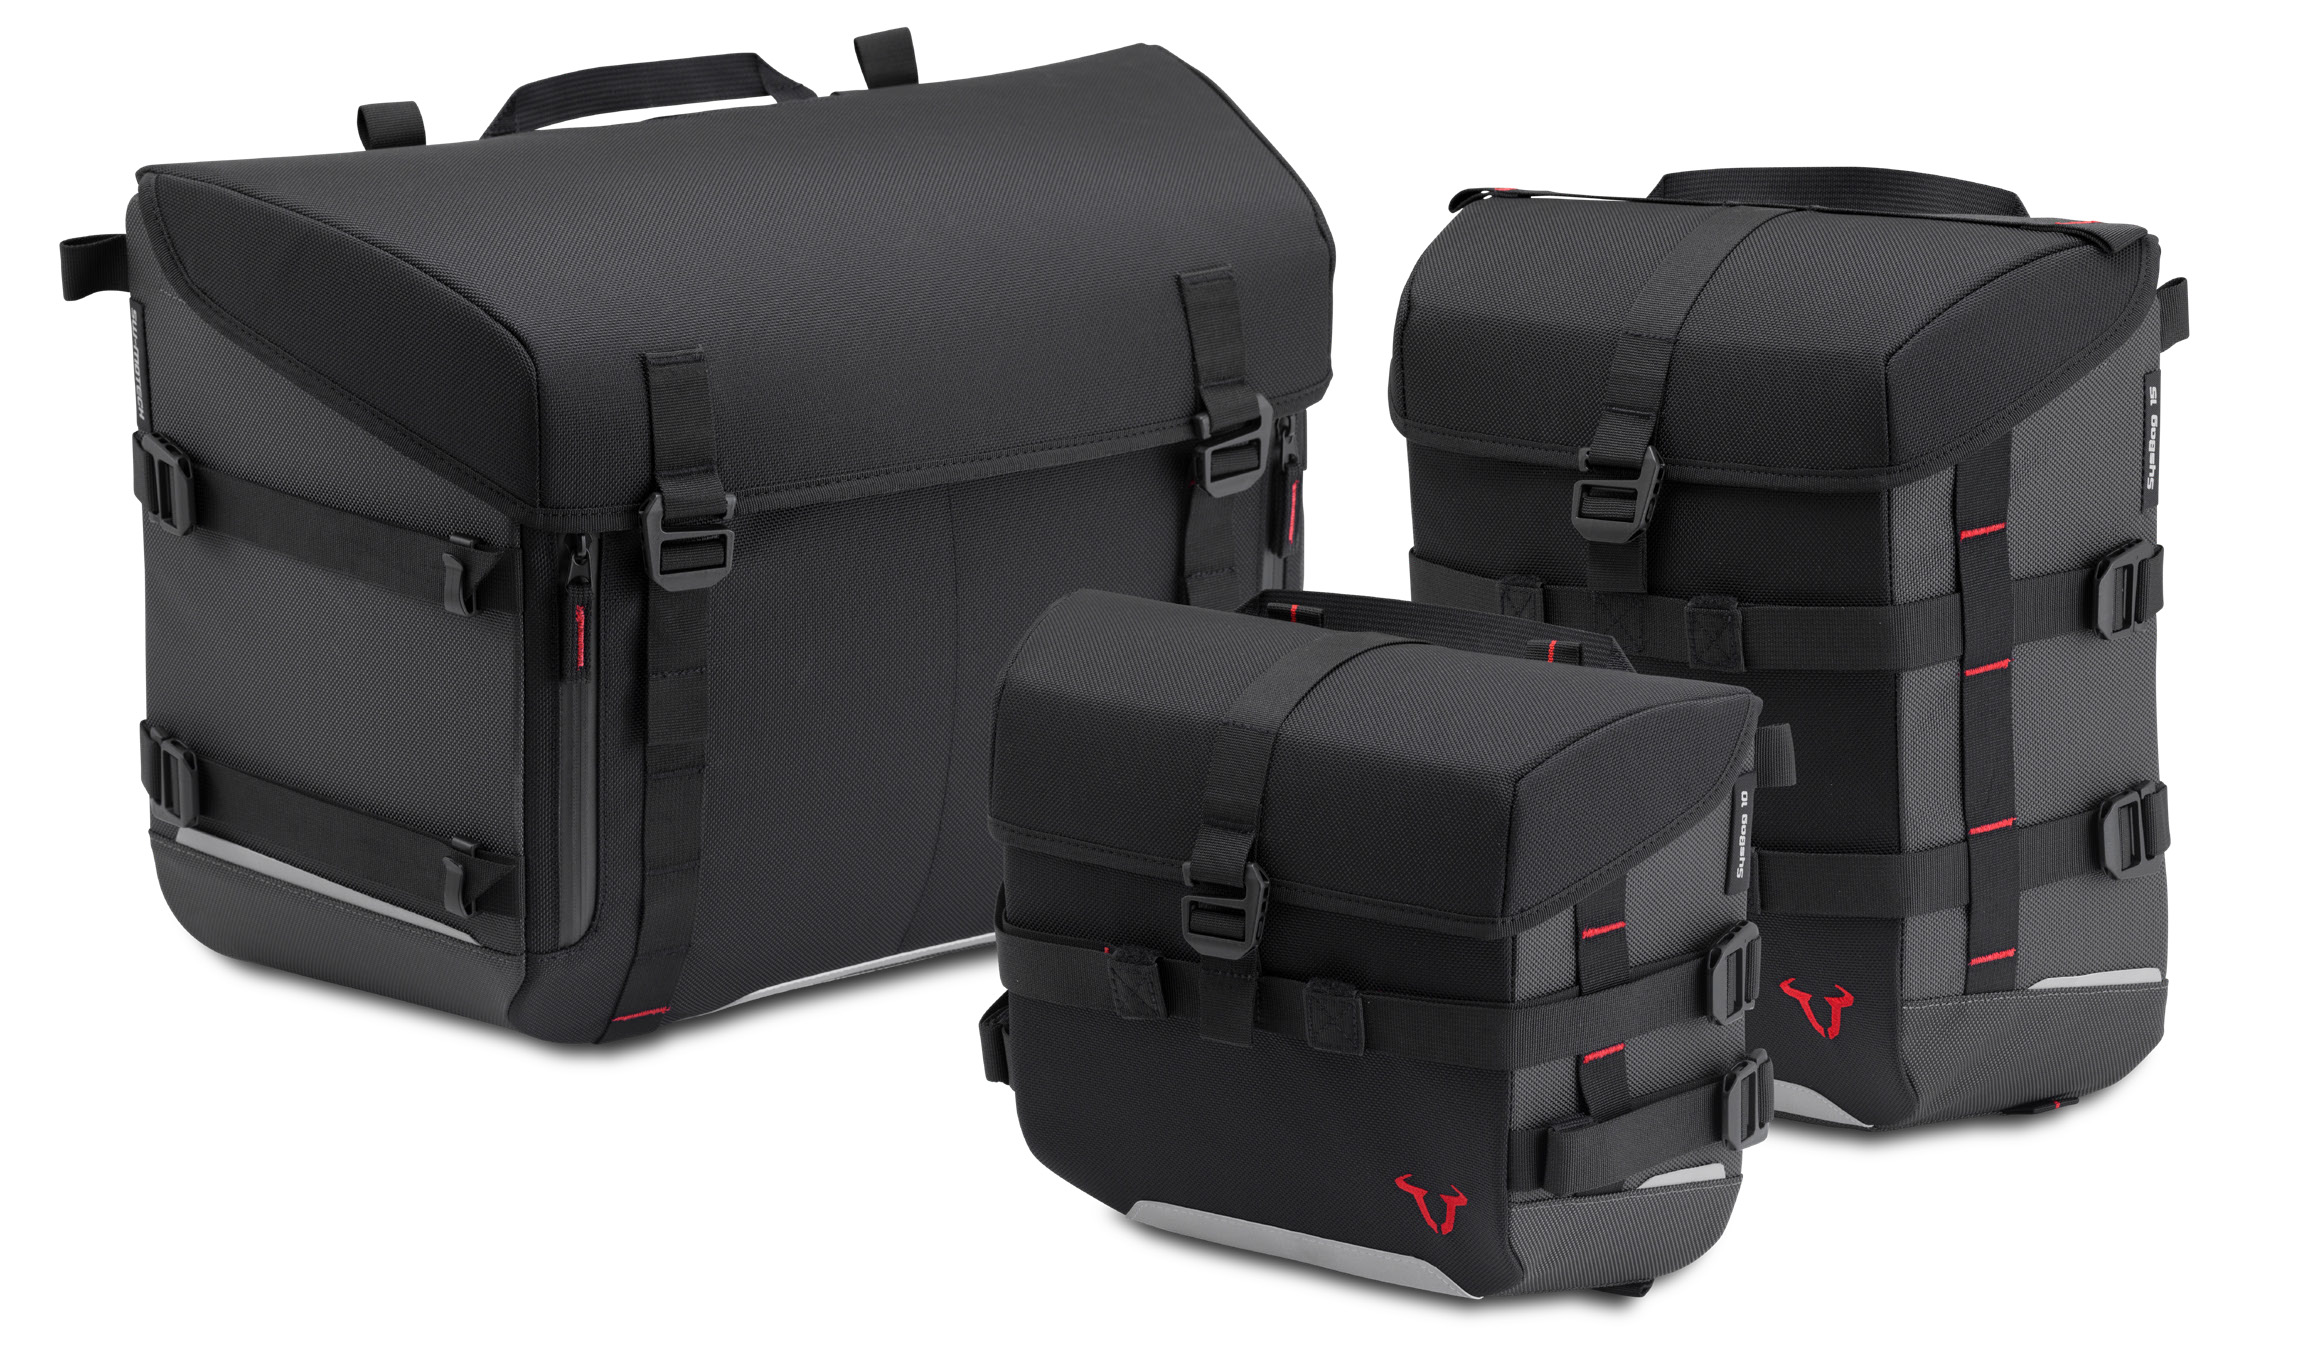 SW Motech re-engineer luggage with SysBag